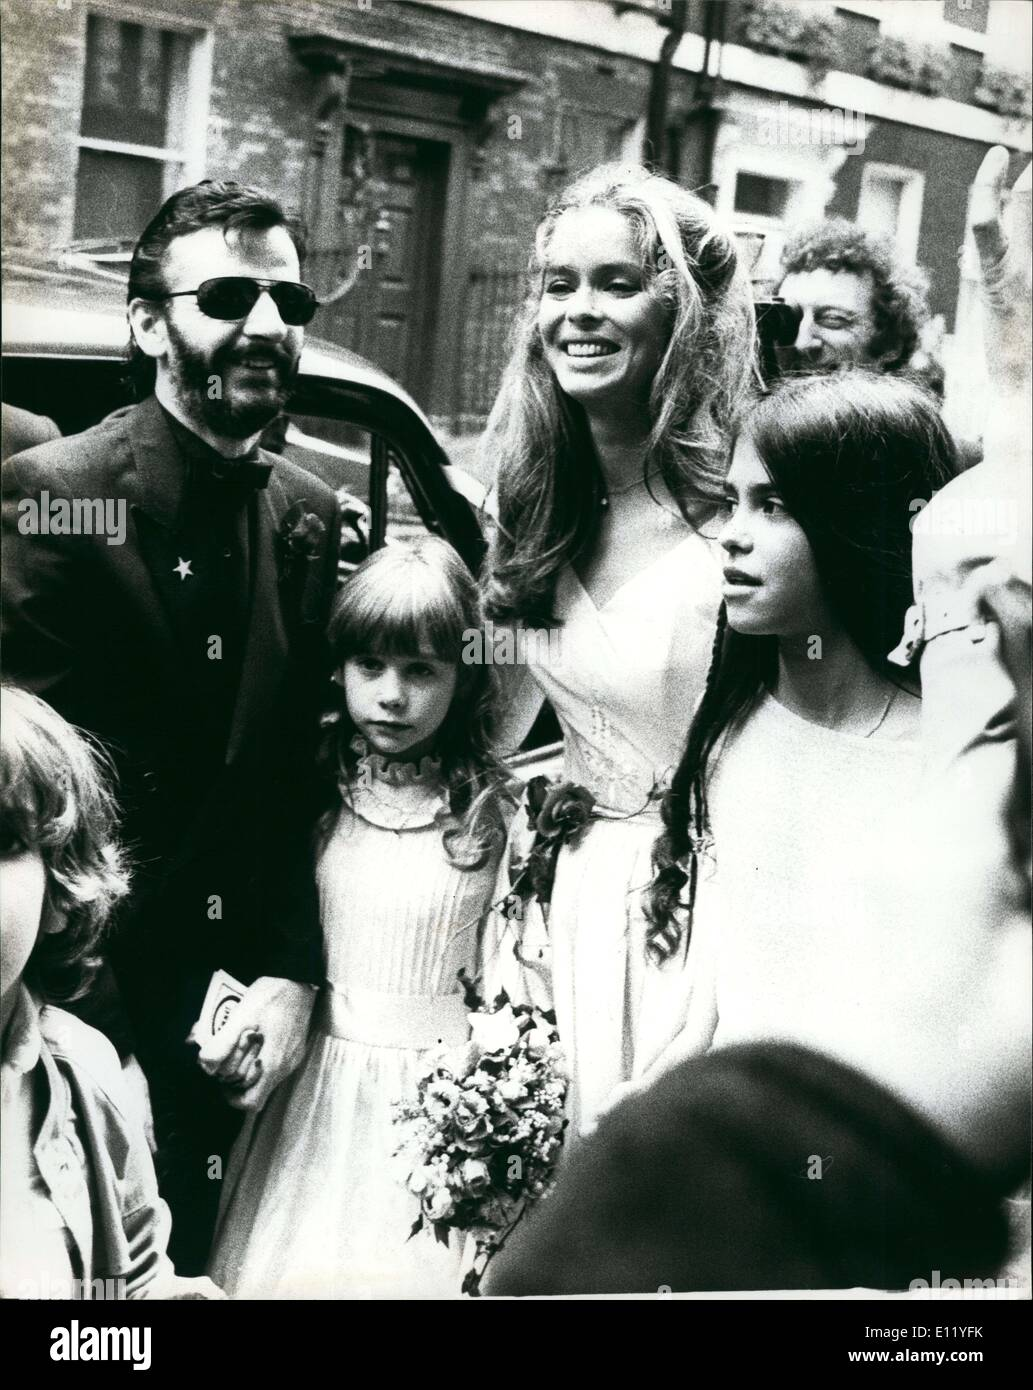 Apr. 04, 1981 - Beatles Together For Ringo's Wedding: Former Beatles paul Mocartney and George Harrison were among the celebraities who attended the wedding of their former fellow band member Ringo Starr in London today. 41 year old Ringo married the girl he has been dating for the past year, 36 year old American actress Barbara Bach. The couple. Who are staying at the Orchestrate Hotel, were wed in a short Germany at Marylebone register office in London - Stock Image